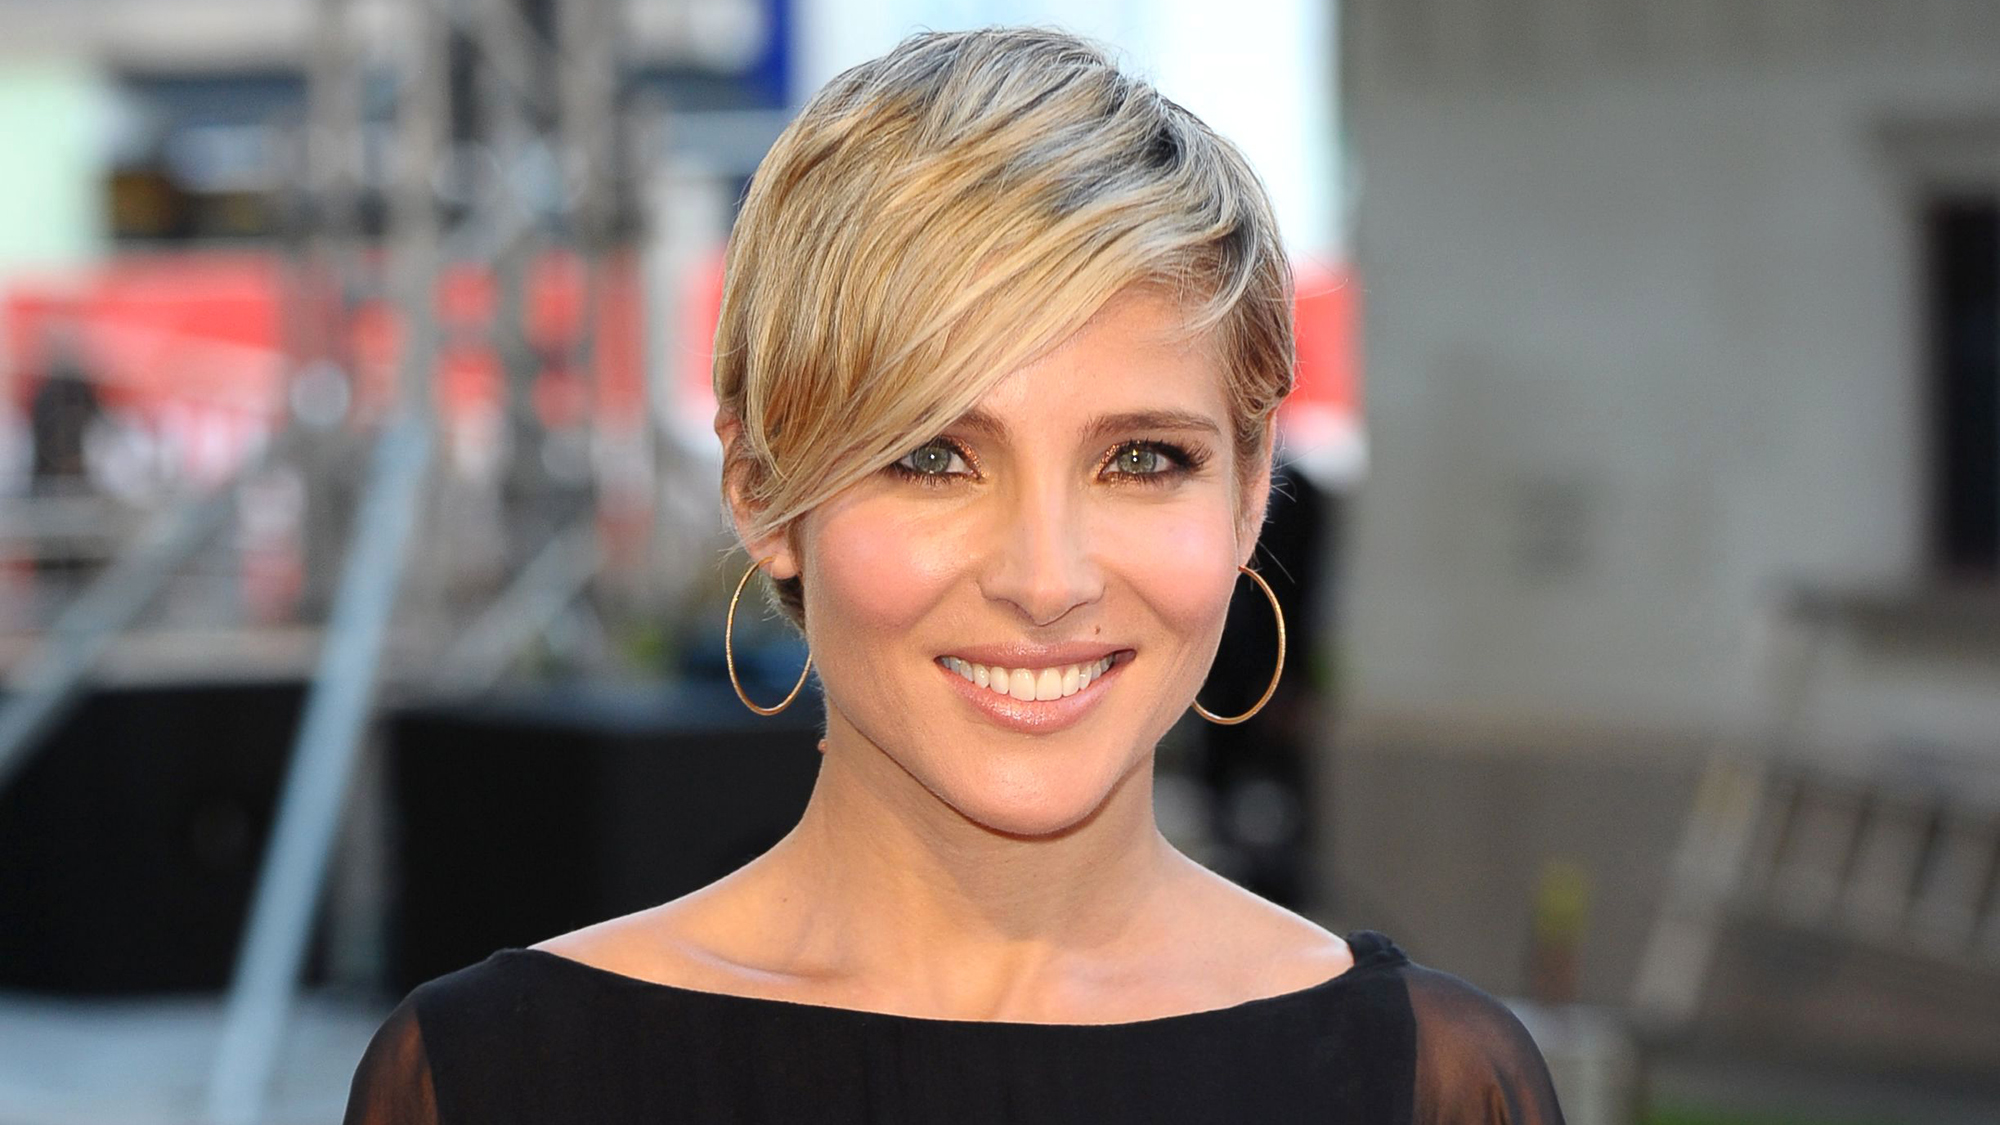 How To Make Your Hair Look Short Without Cutting It At All